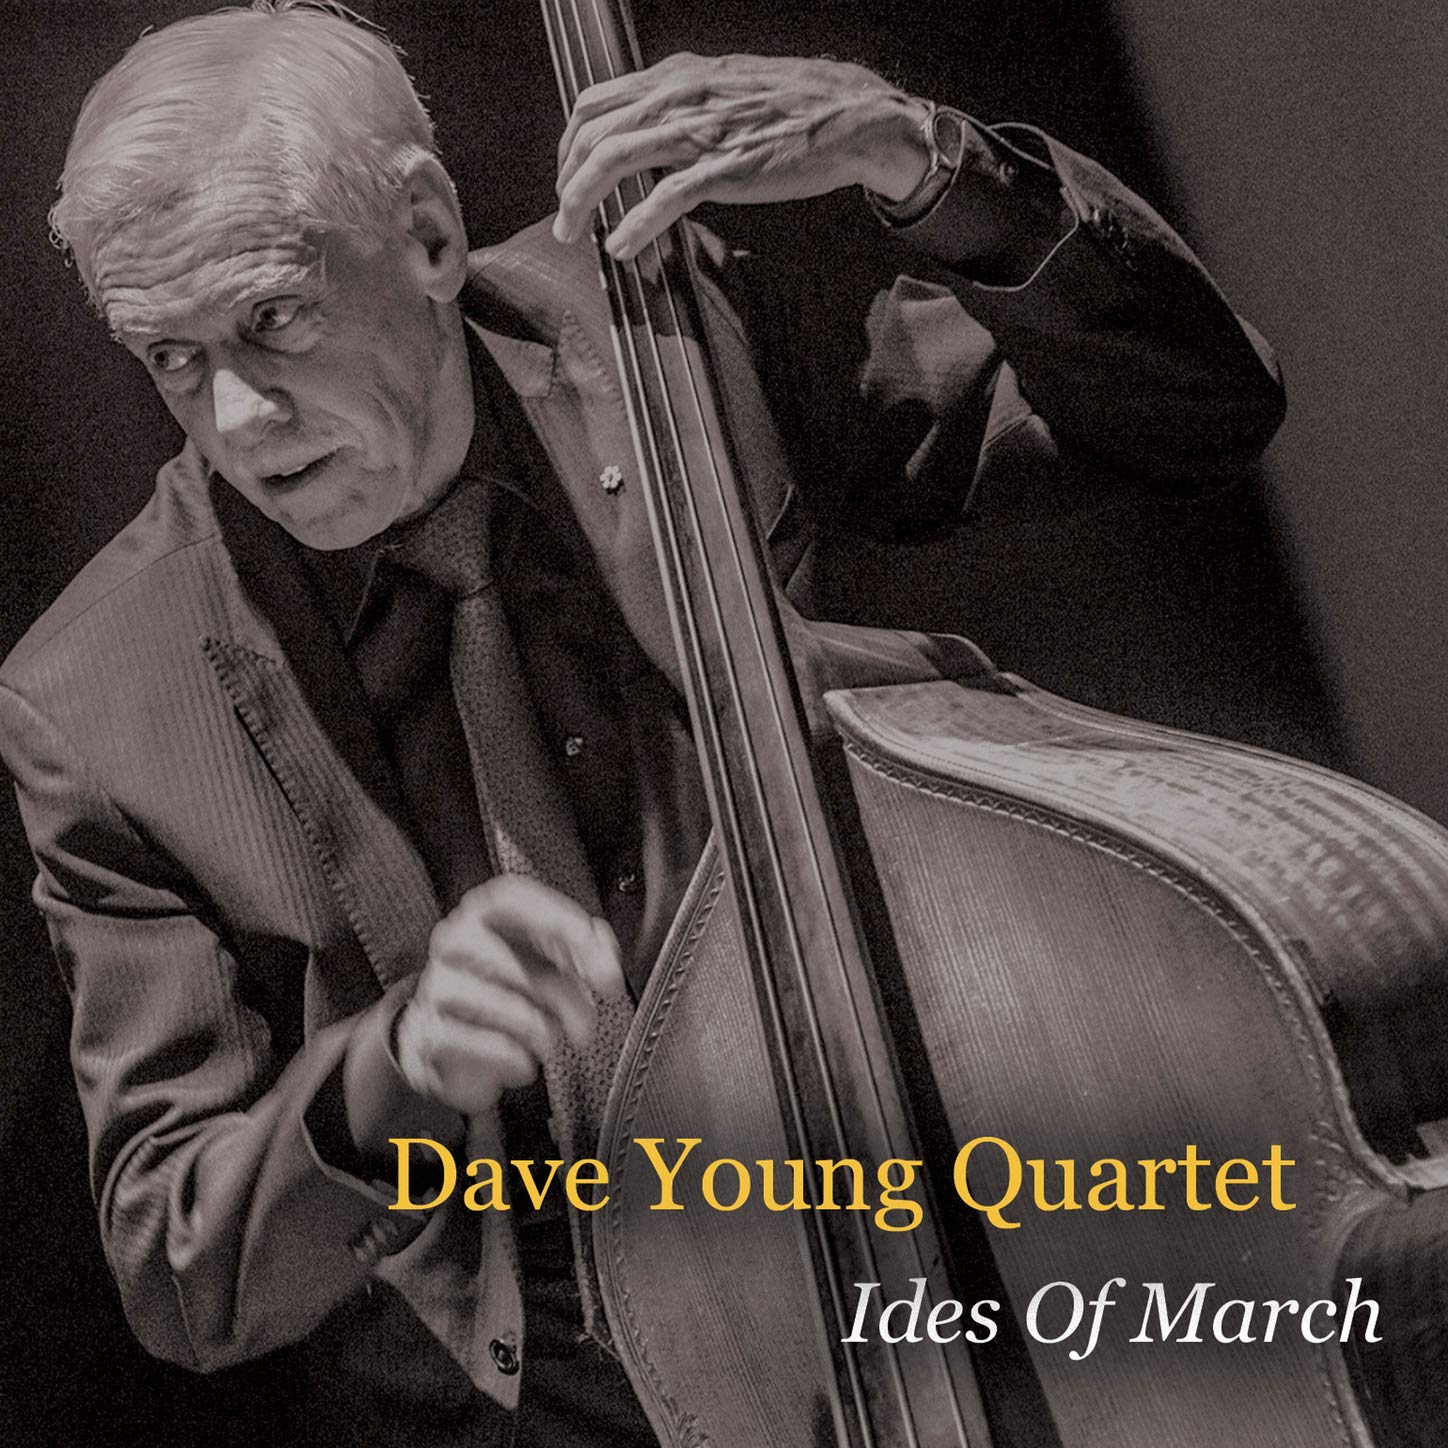 Dave Young Quartet - Ides Of March (2020) [FLAC] Download